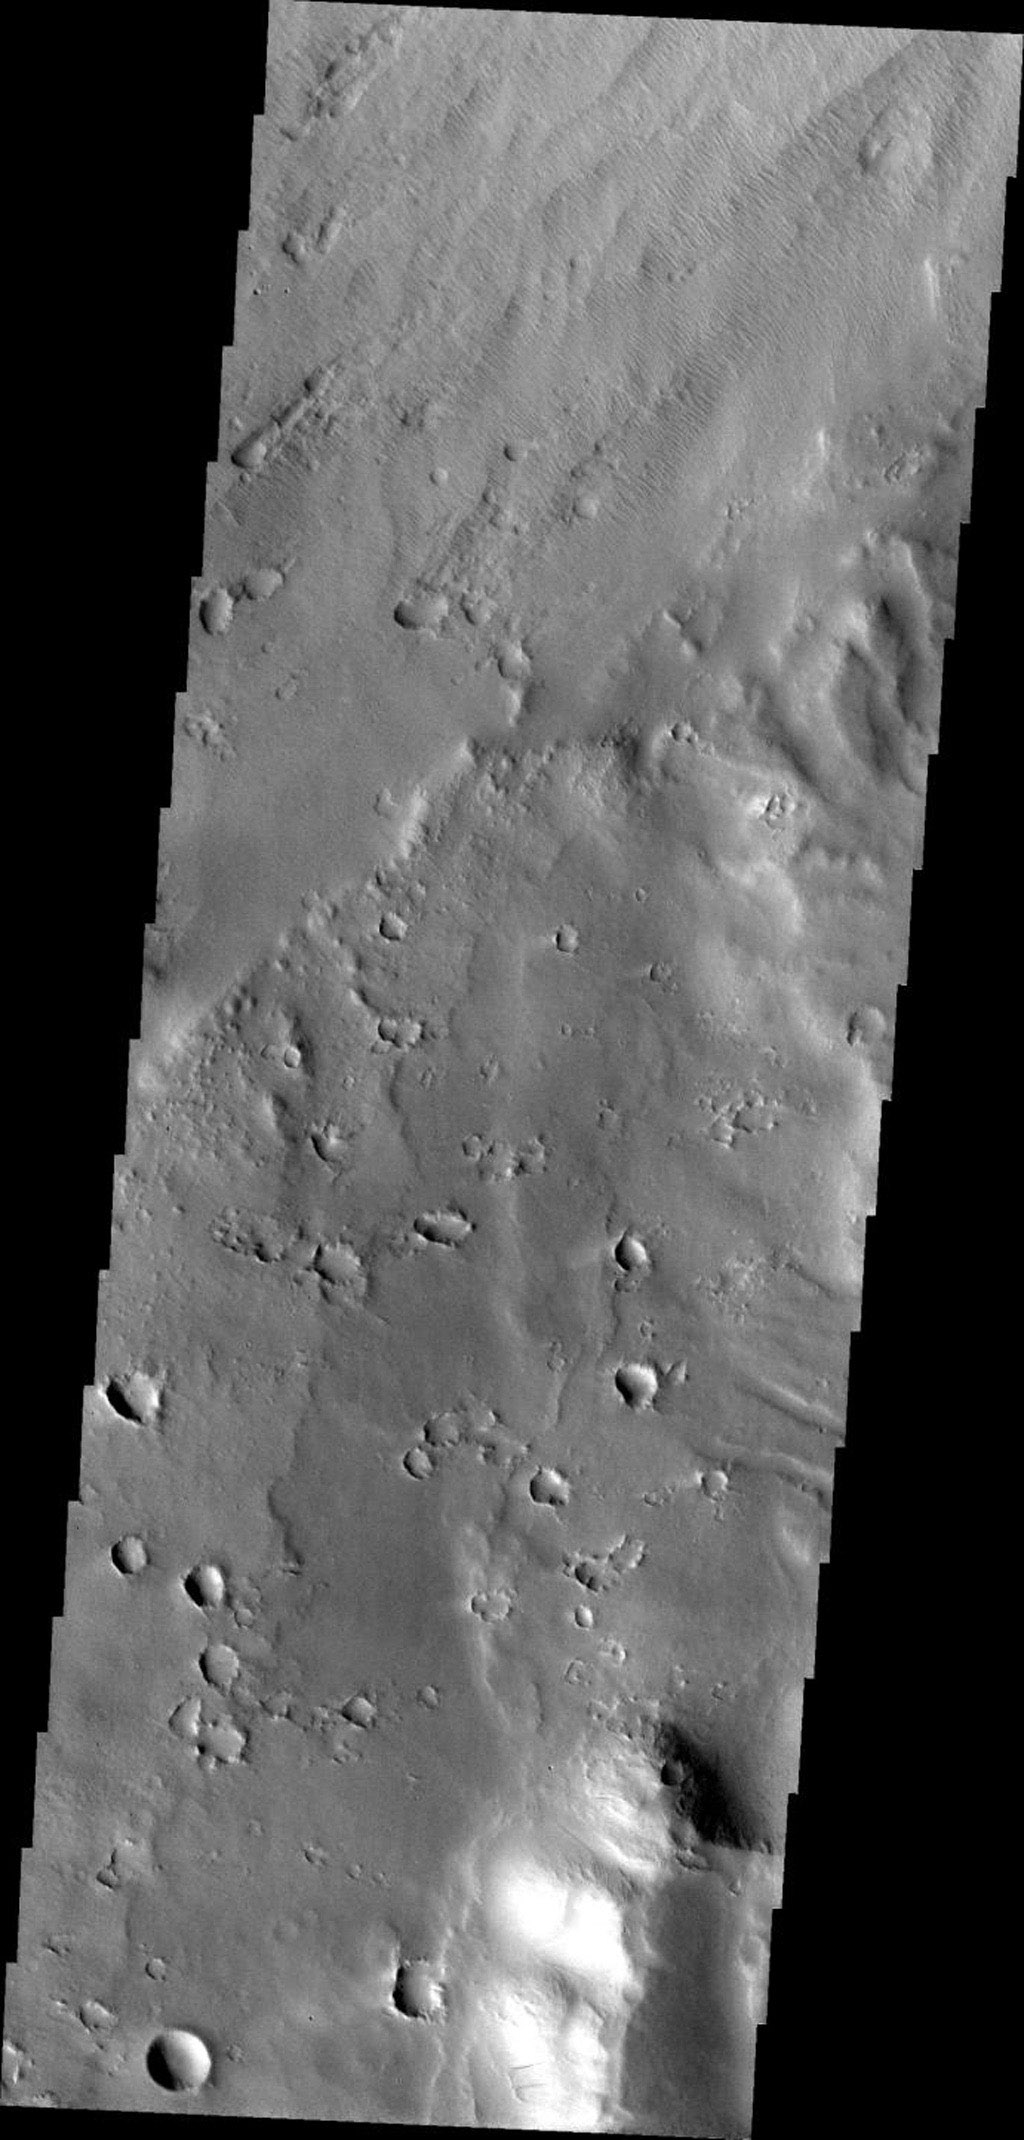 This image from NASA's Mars Odyssey spacecraft shows Apollinaris Patera, an old volcano on Mars that has undergone extensive erosion.